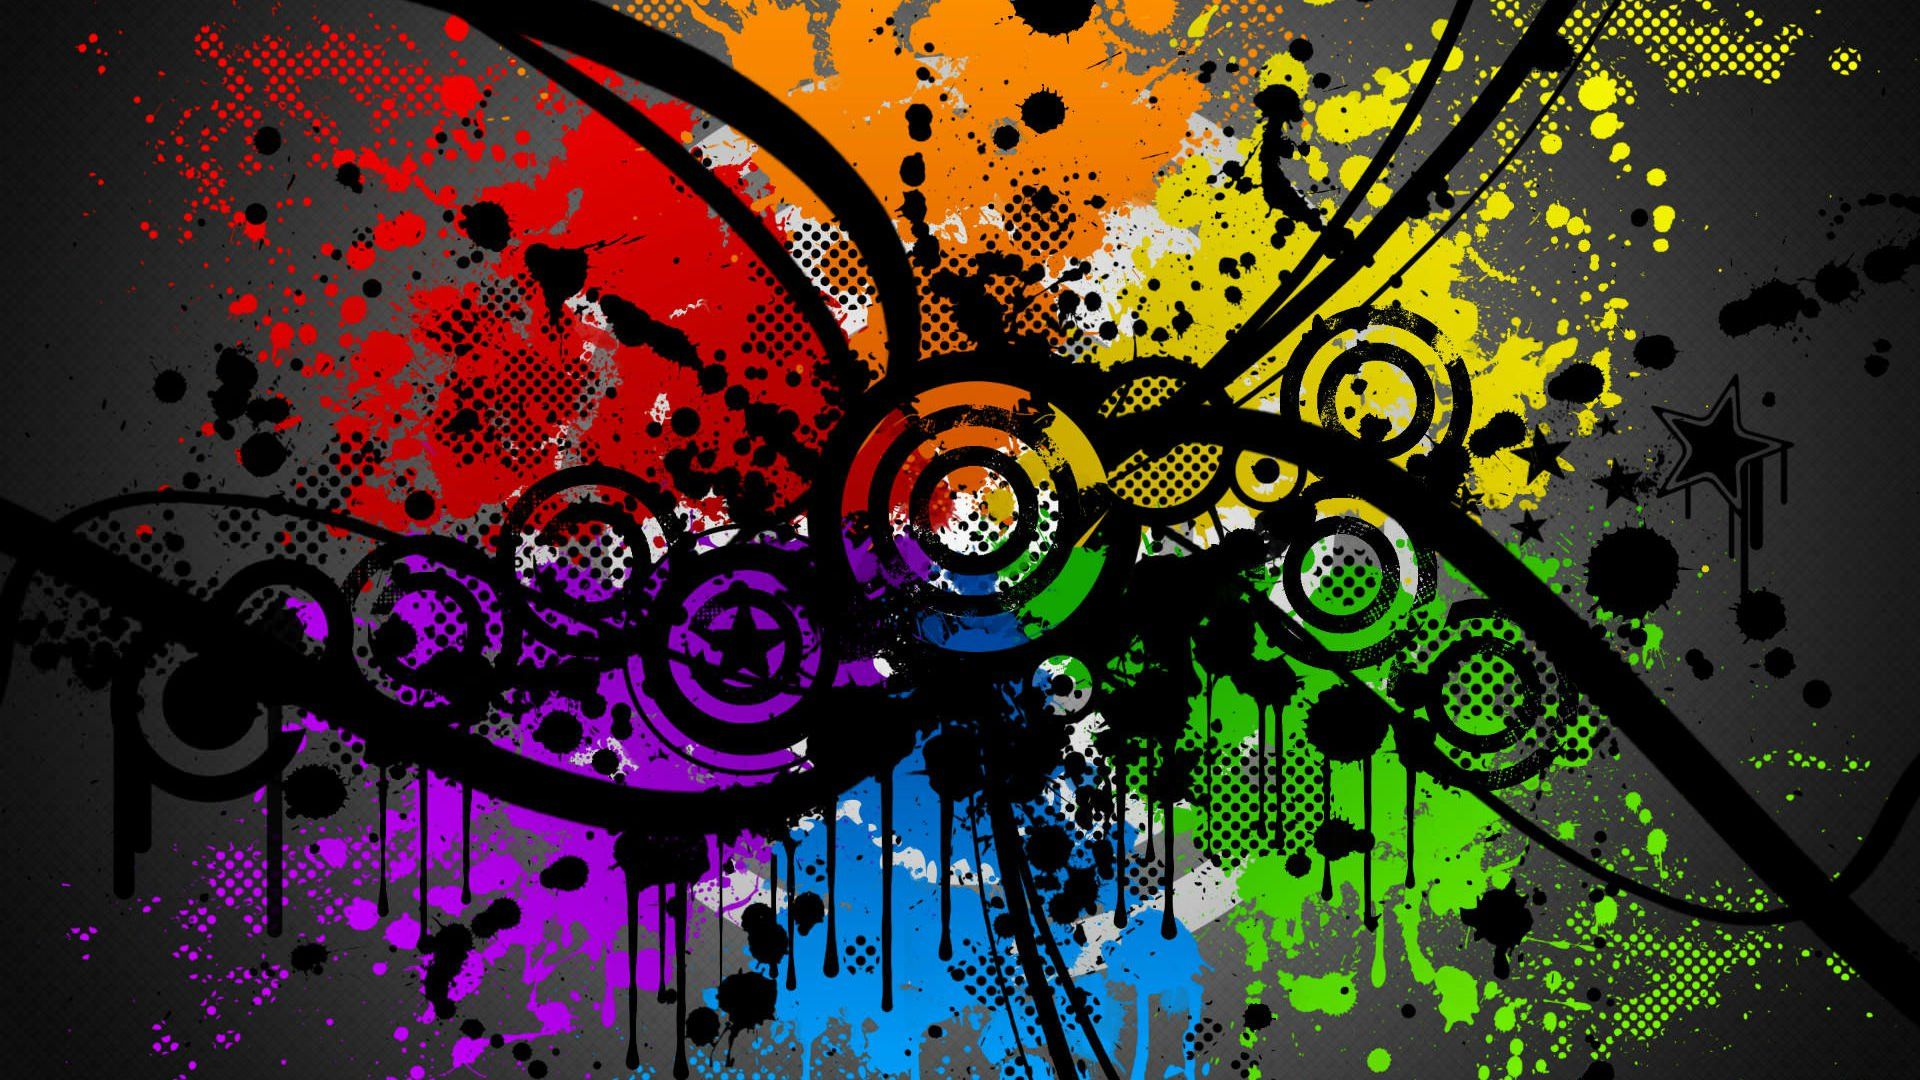 Trending Abstract Computer And Desktop Wallpapers And Screensavers Offering Free Web Design Conce Website Design Wordpress Free Web Design Website Design Free